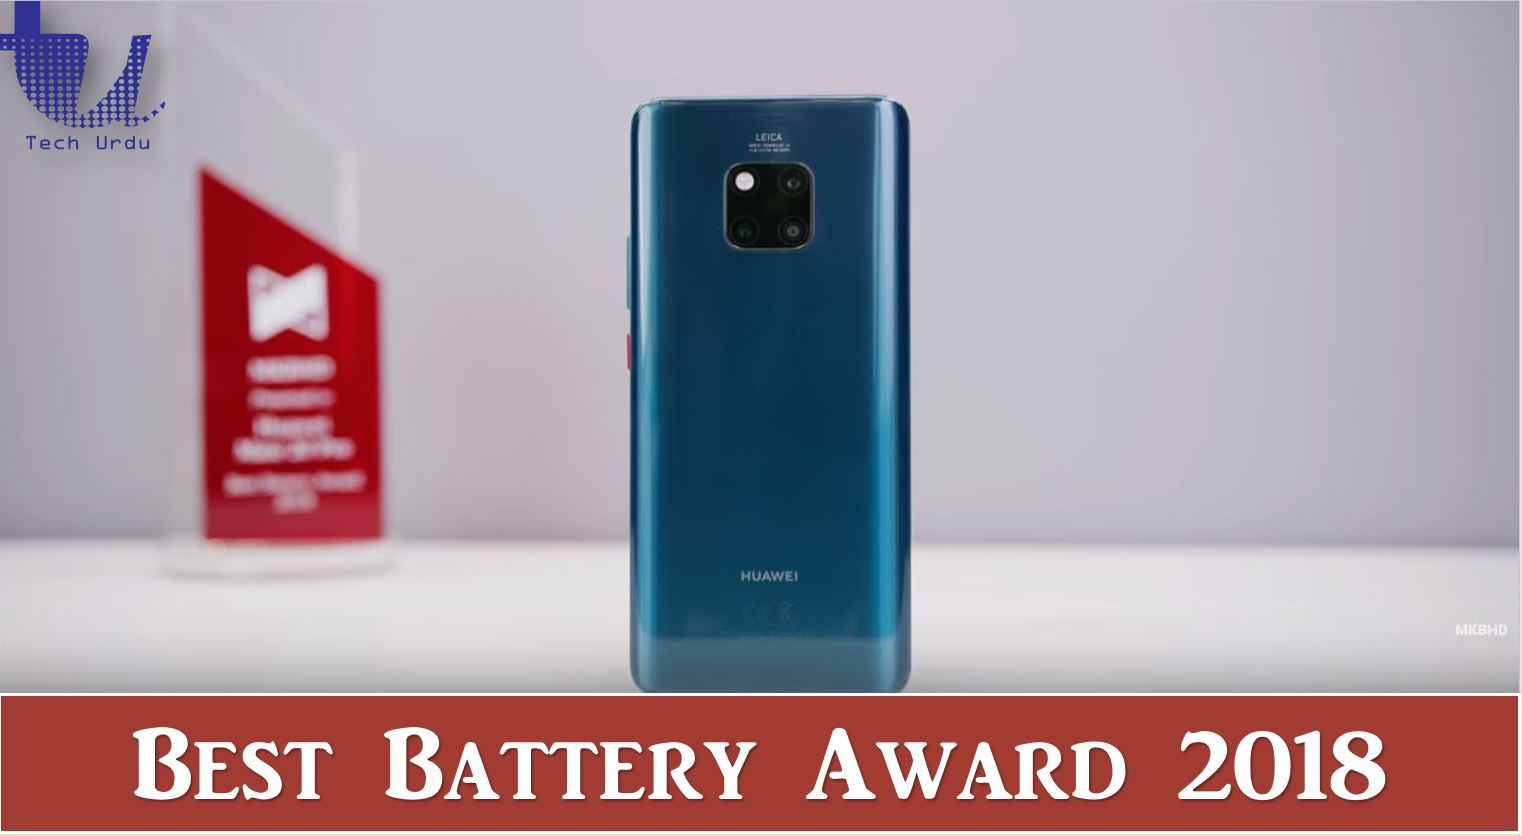 Smartphone Awards 2018 Ft. MKBHD (Marques Brownlee)